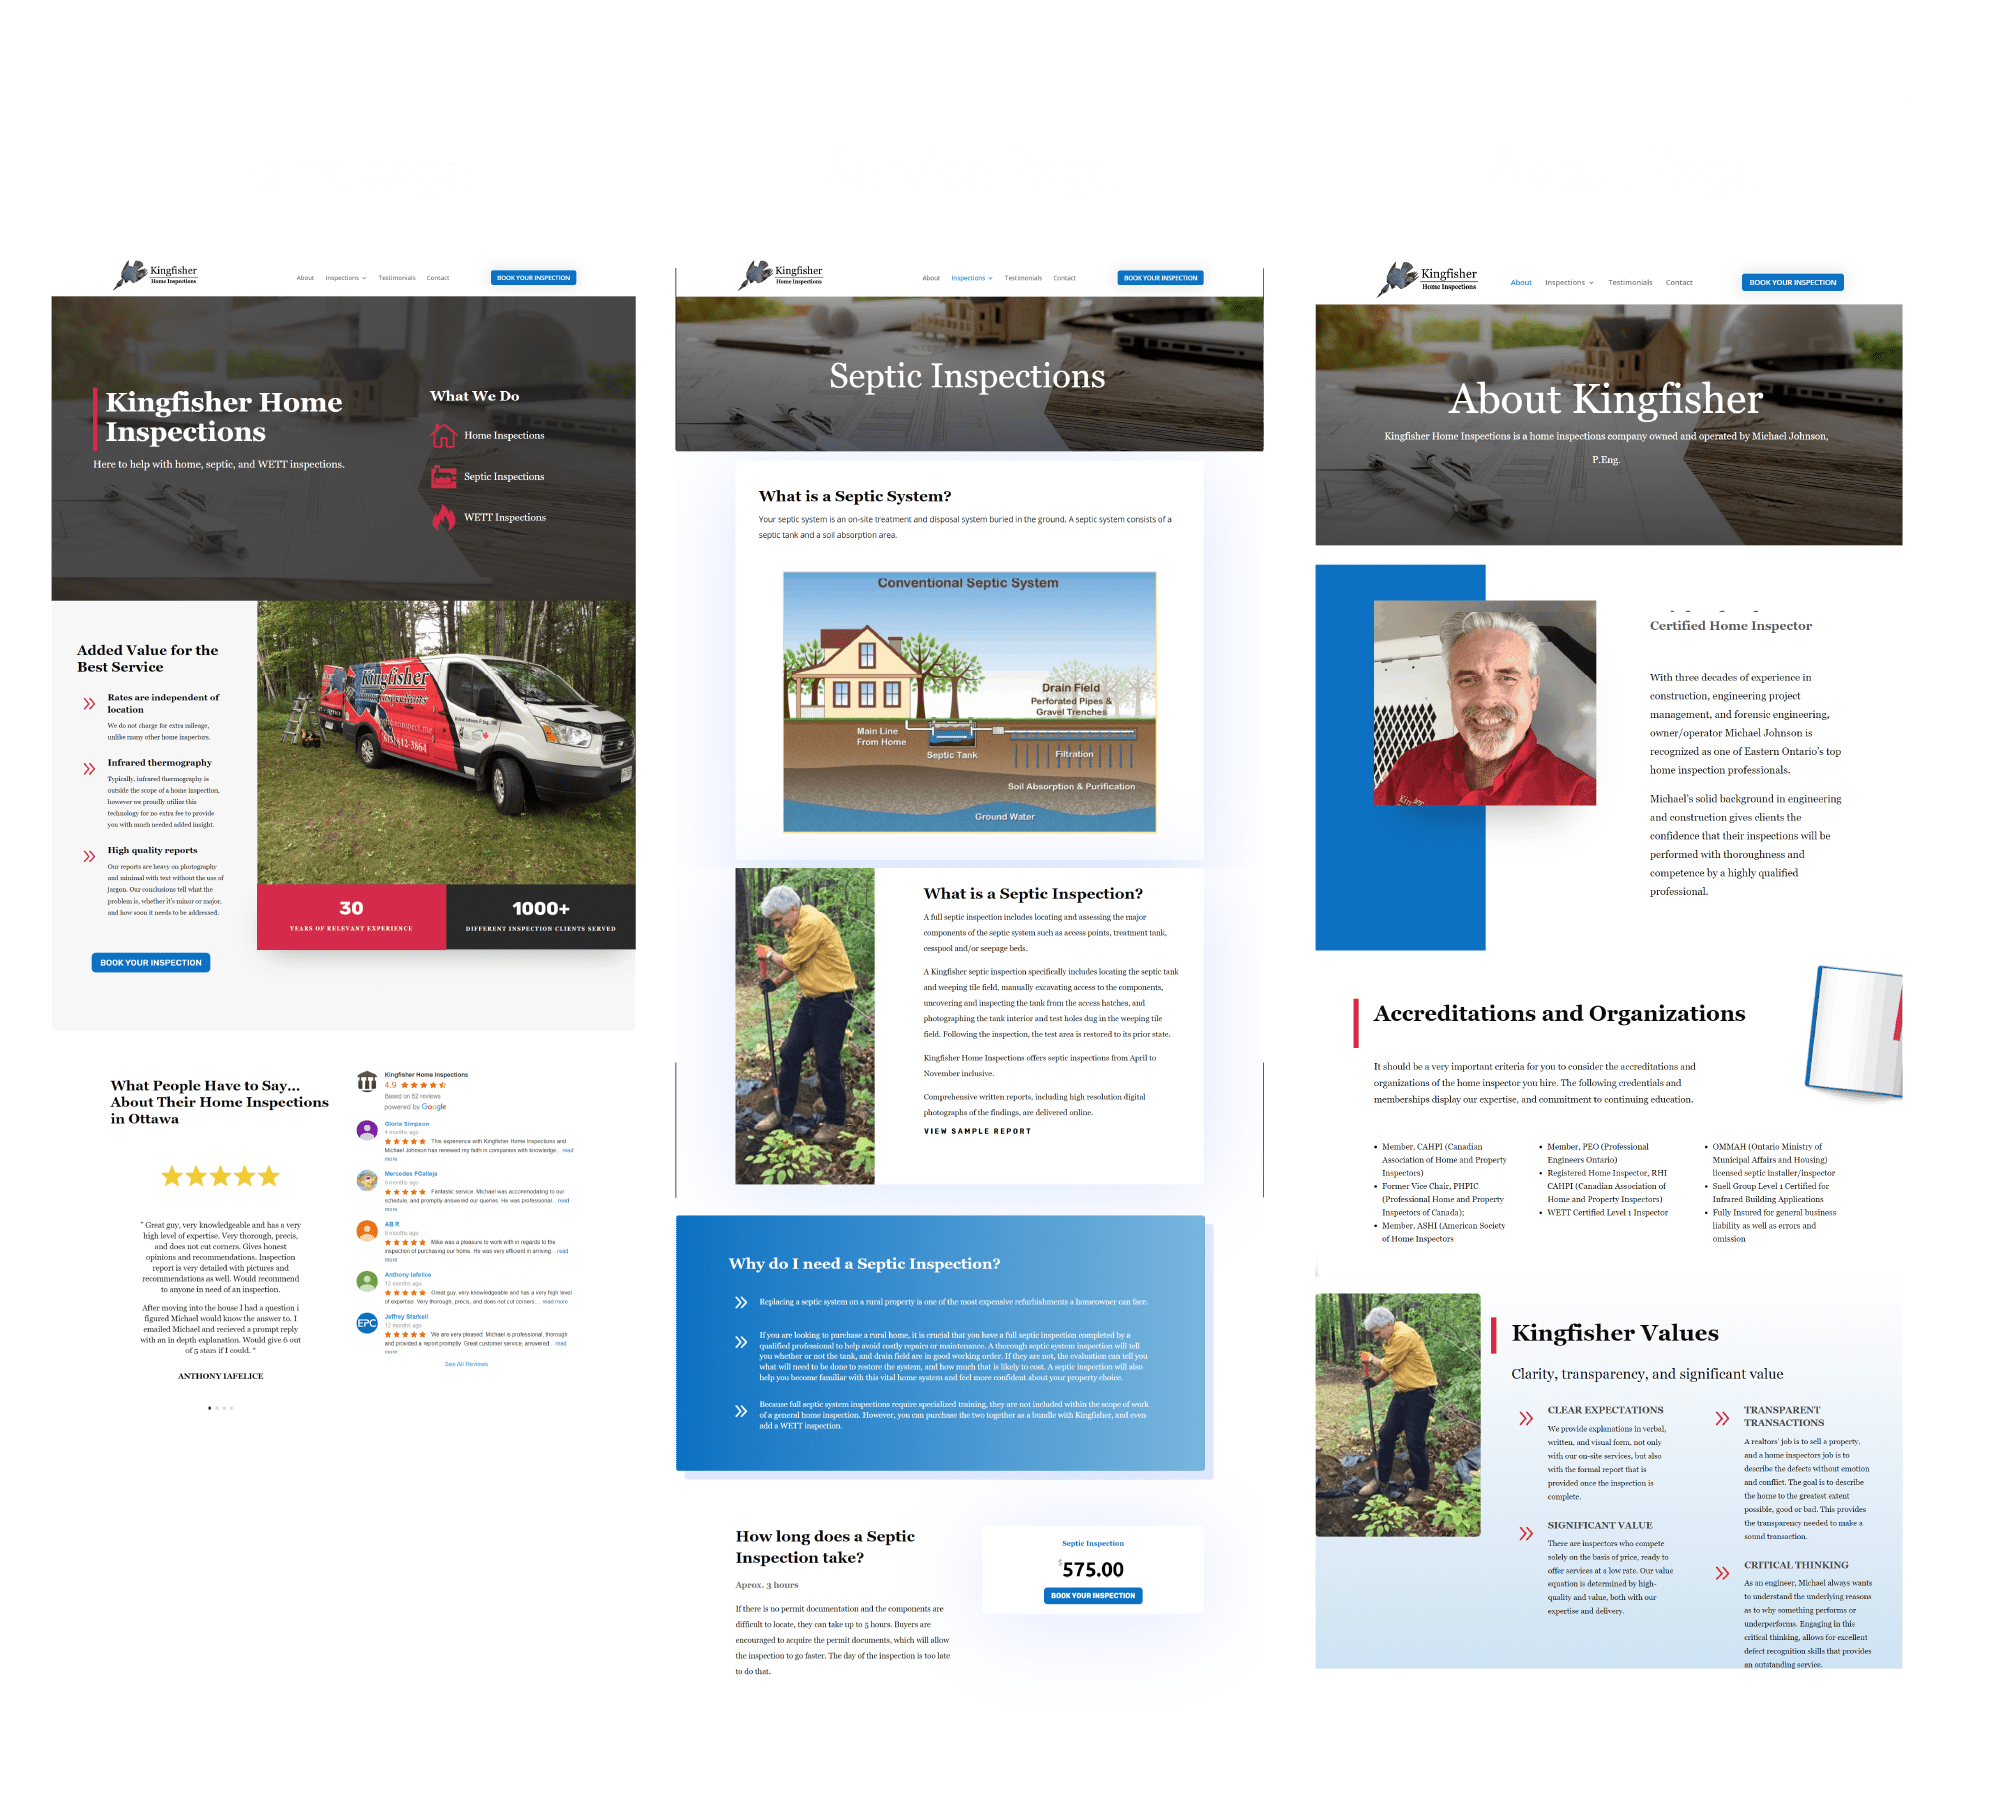 Screenshots of the Kingfisher Inspections' home page, about page, and service page